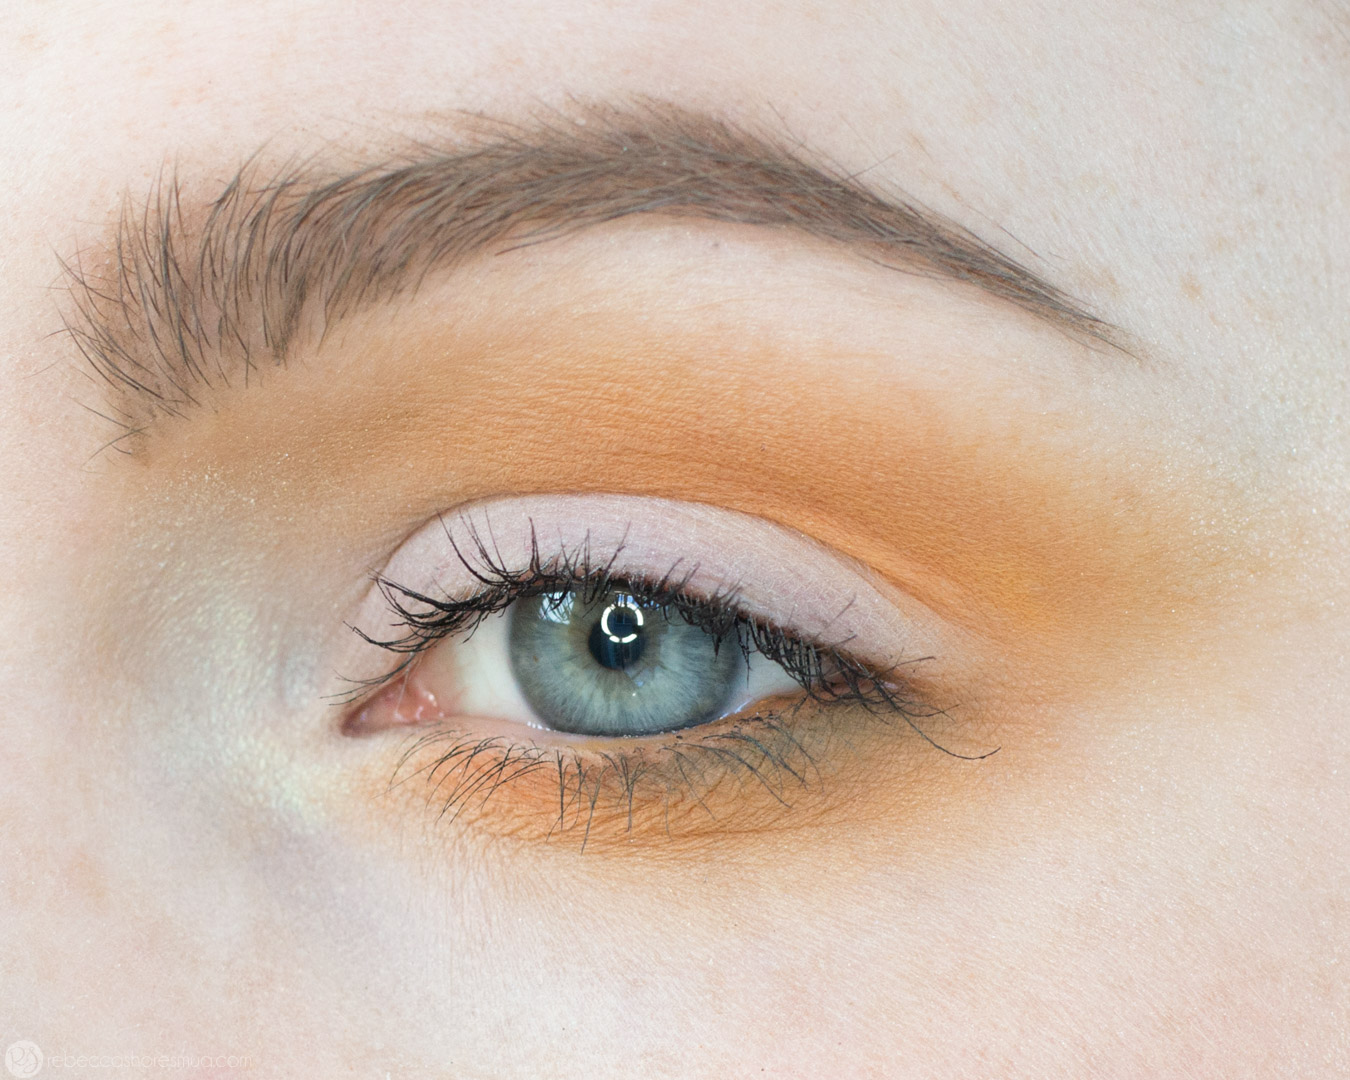 Orange and Yellow Eyeshadow Tutorial with Anastasia Beverlyhills Subculture Palette 7